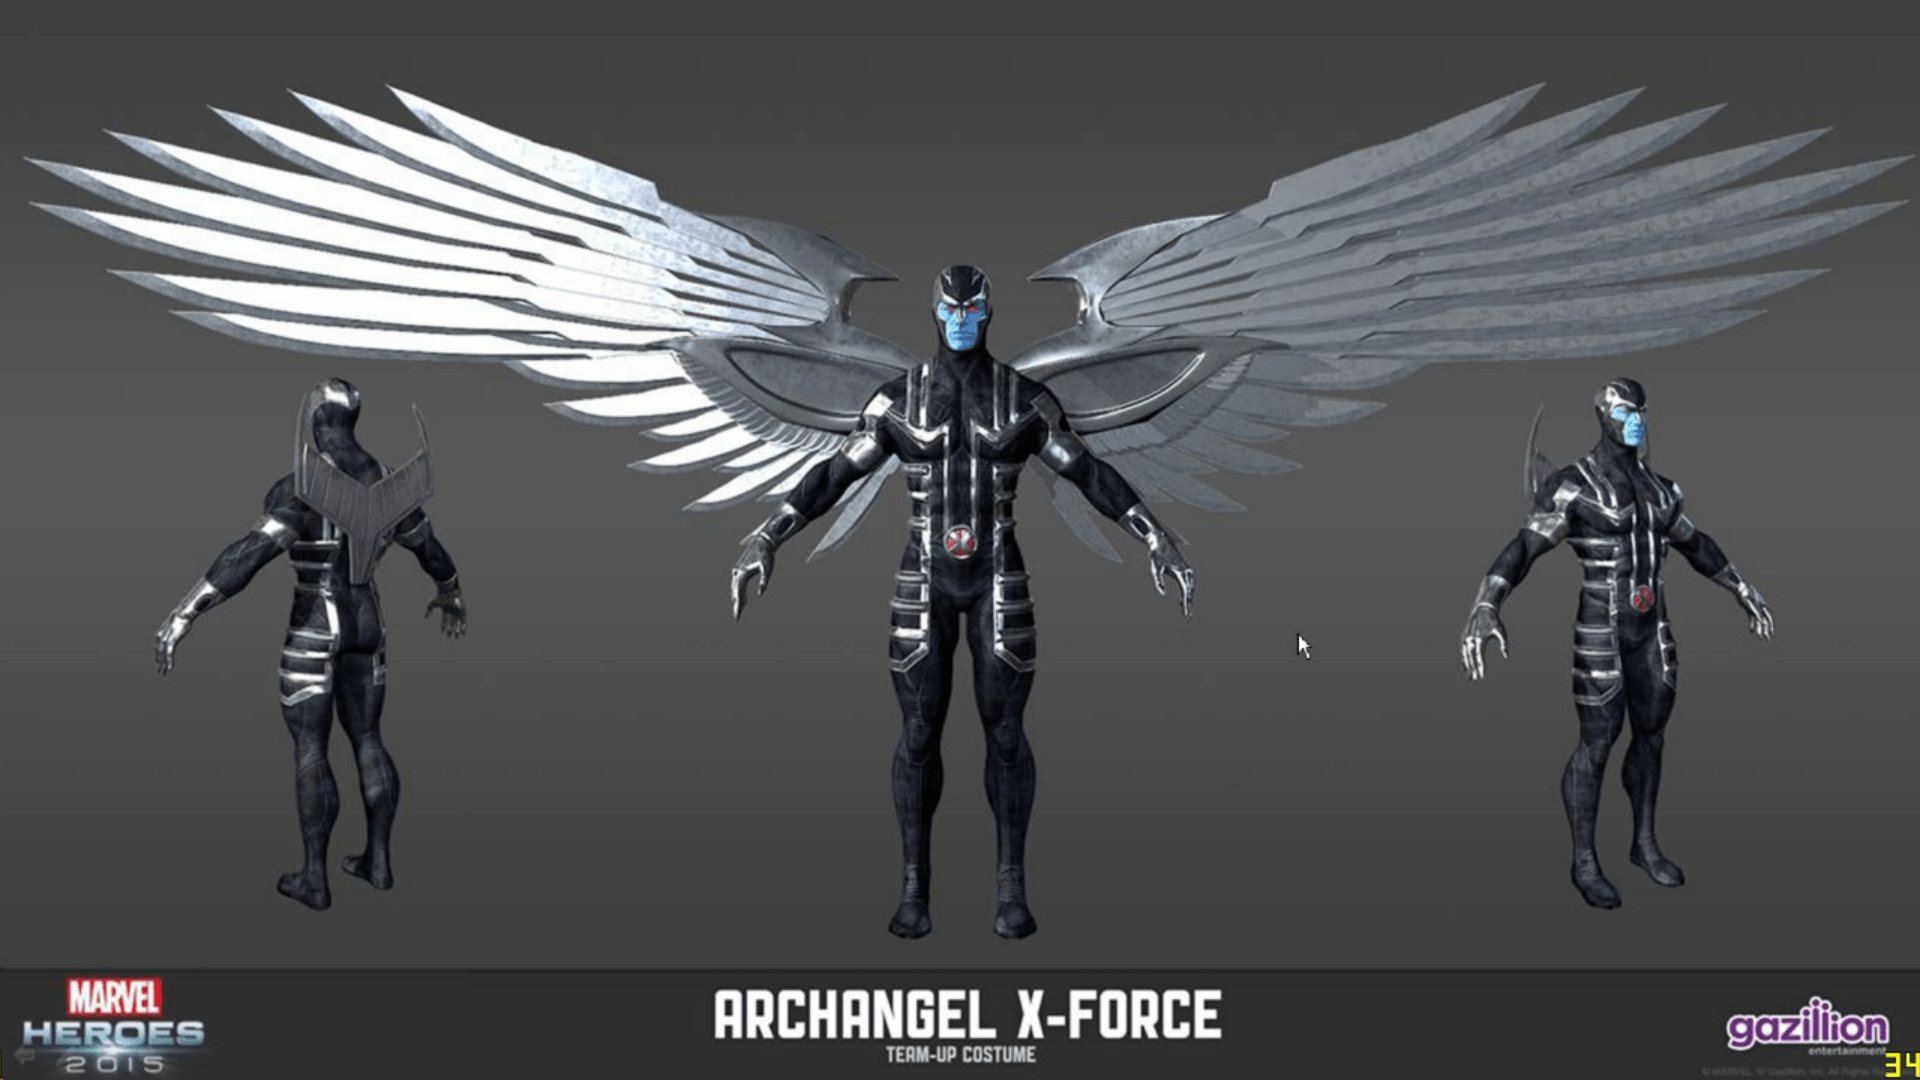 20+ Marvel Heroes Angel Pictures and Ideas on Meta Networks